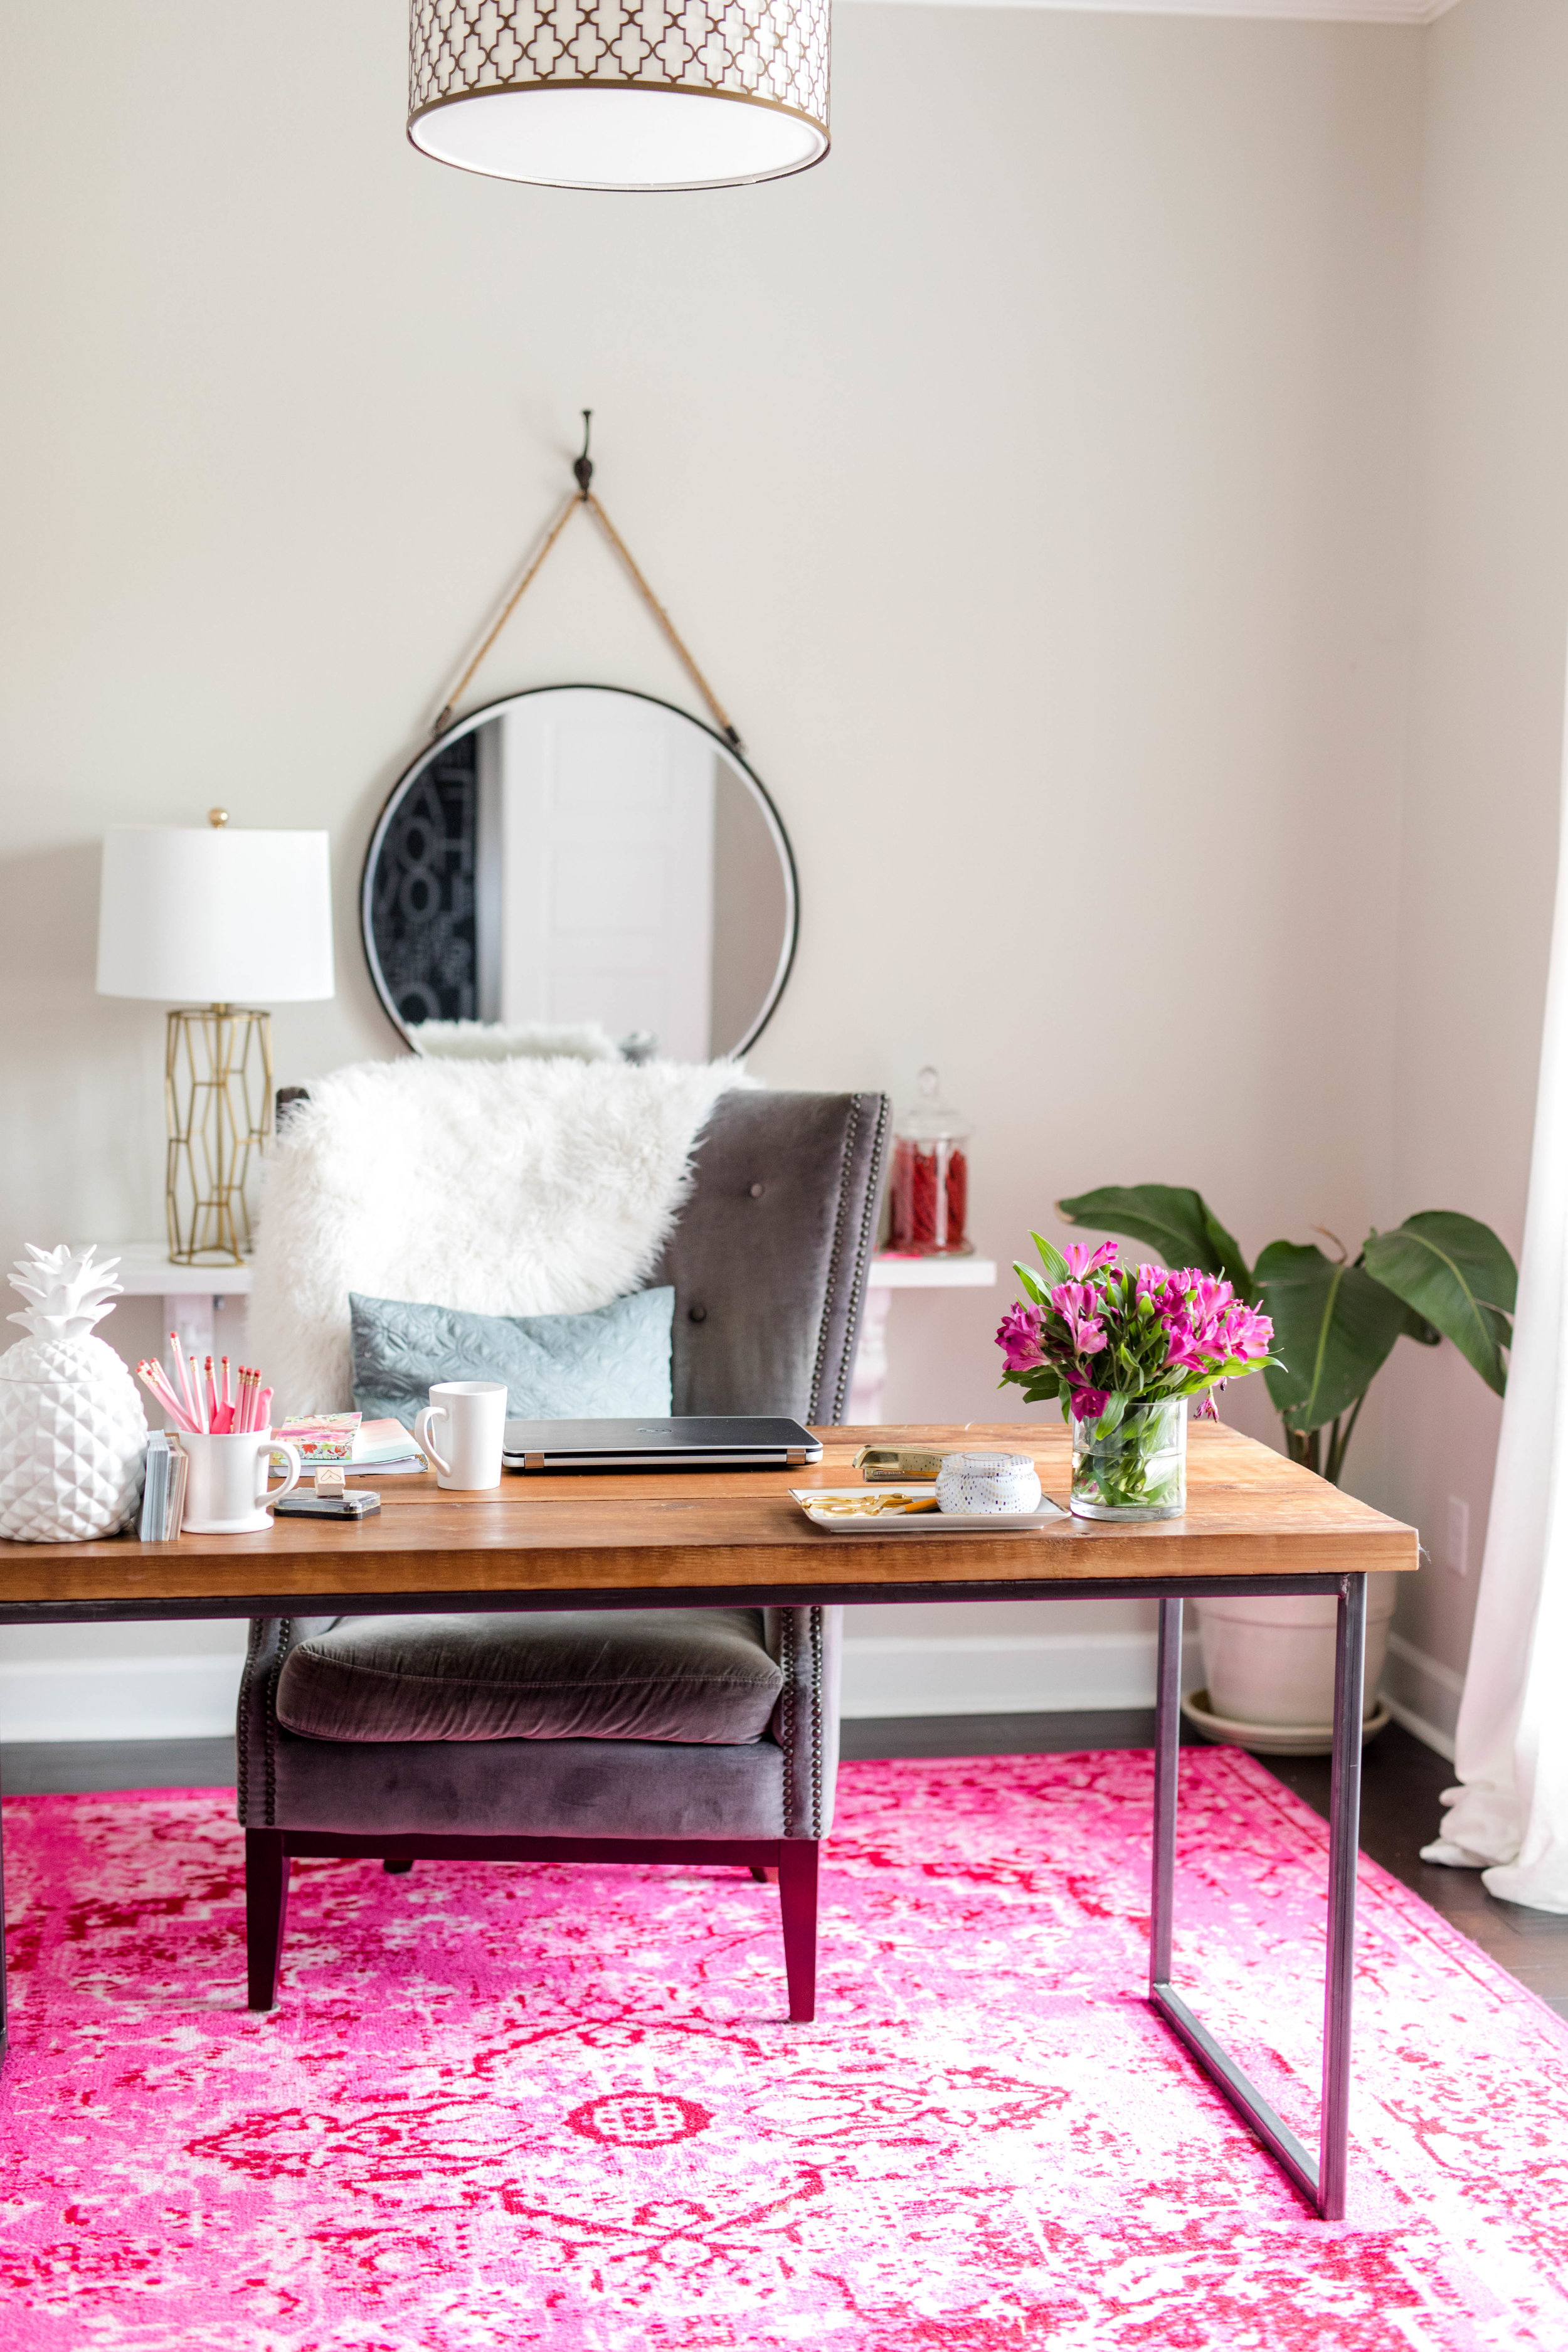 I had a custom desk made for my space. I wanted wood with a little metal detail to keep it modern and light. The chandelier is from  Wayfair , one of my favorite go to places for easy online shopping and great prices.